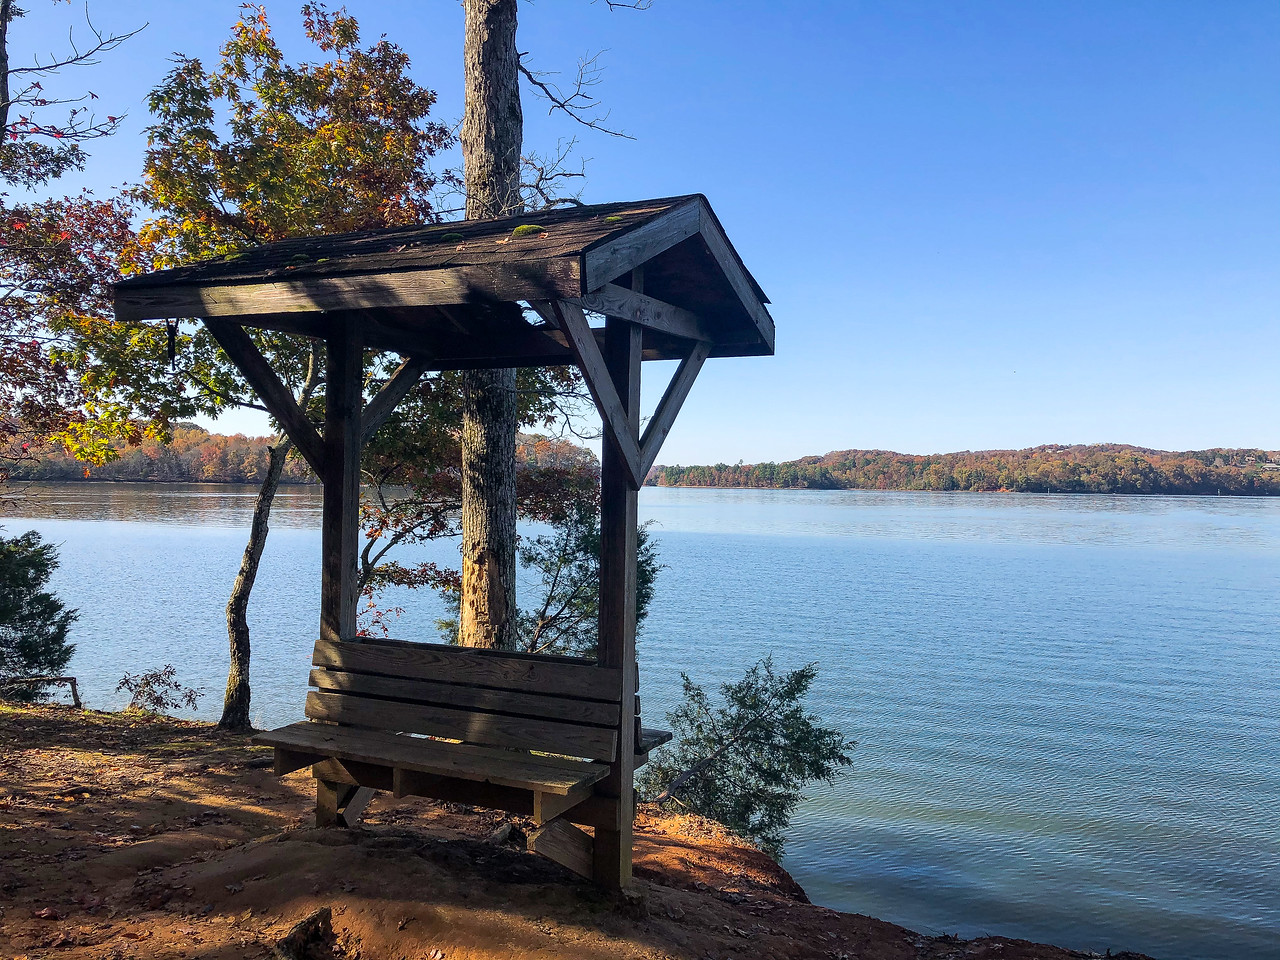 A bench on the shoreline of the lake.